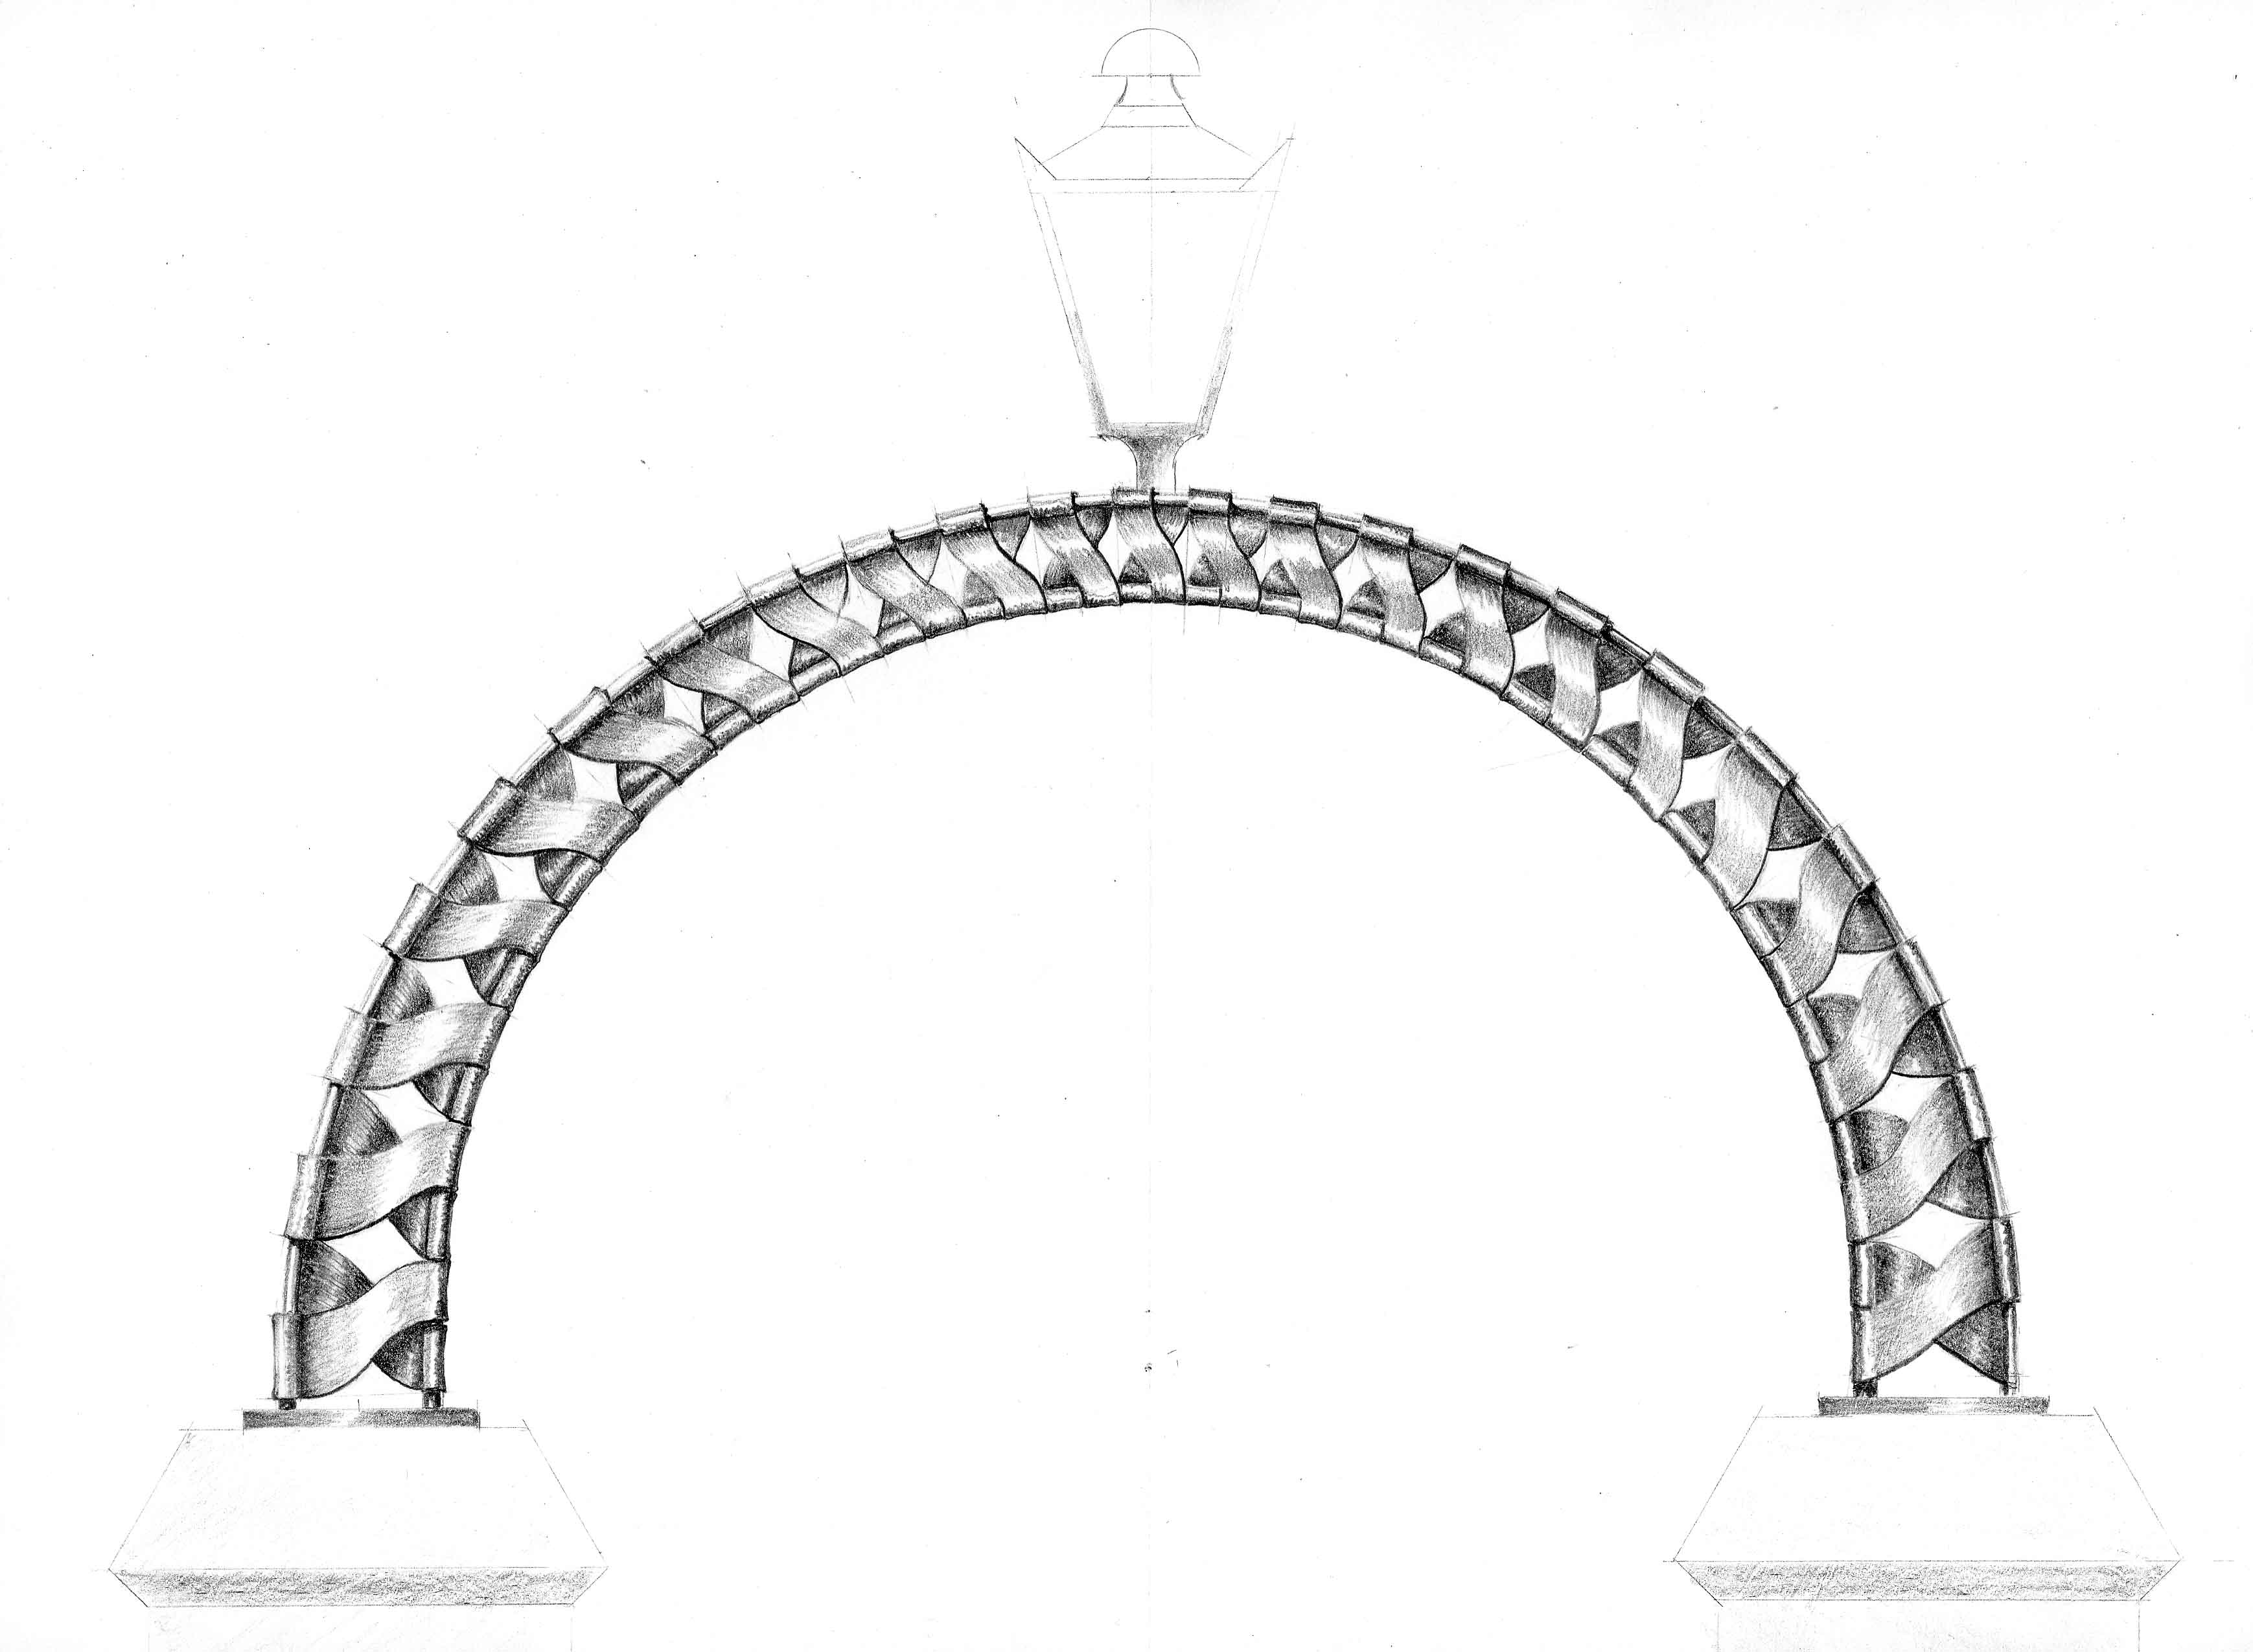 Wymeswold Church 'Olympic Arch' drg